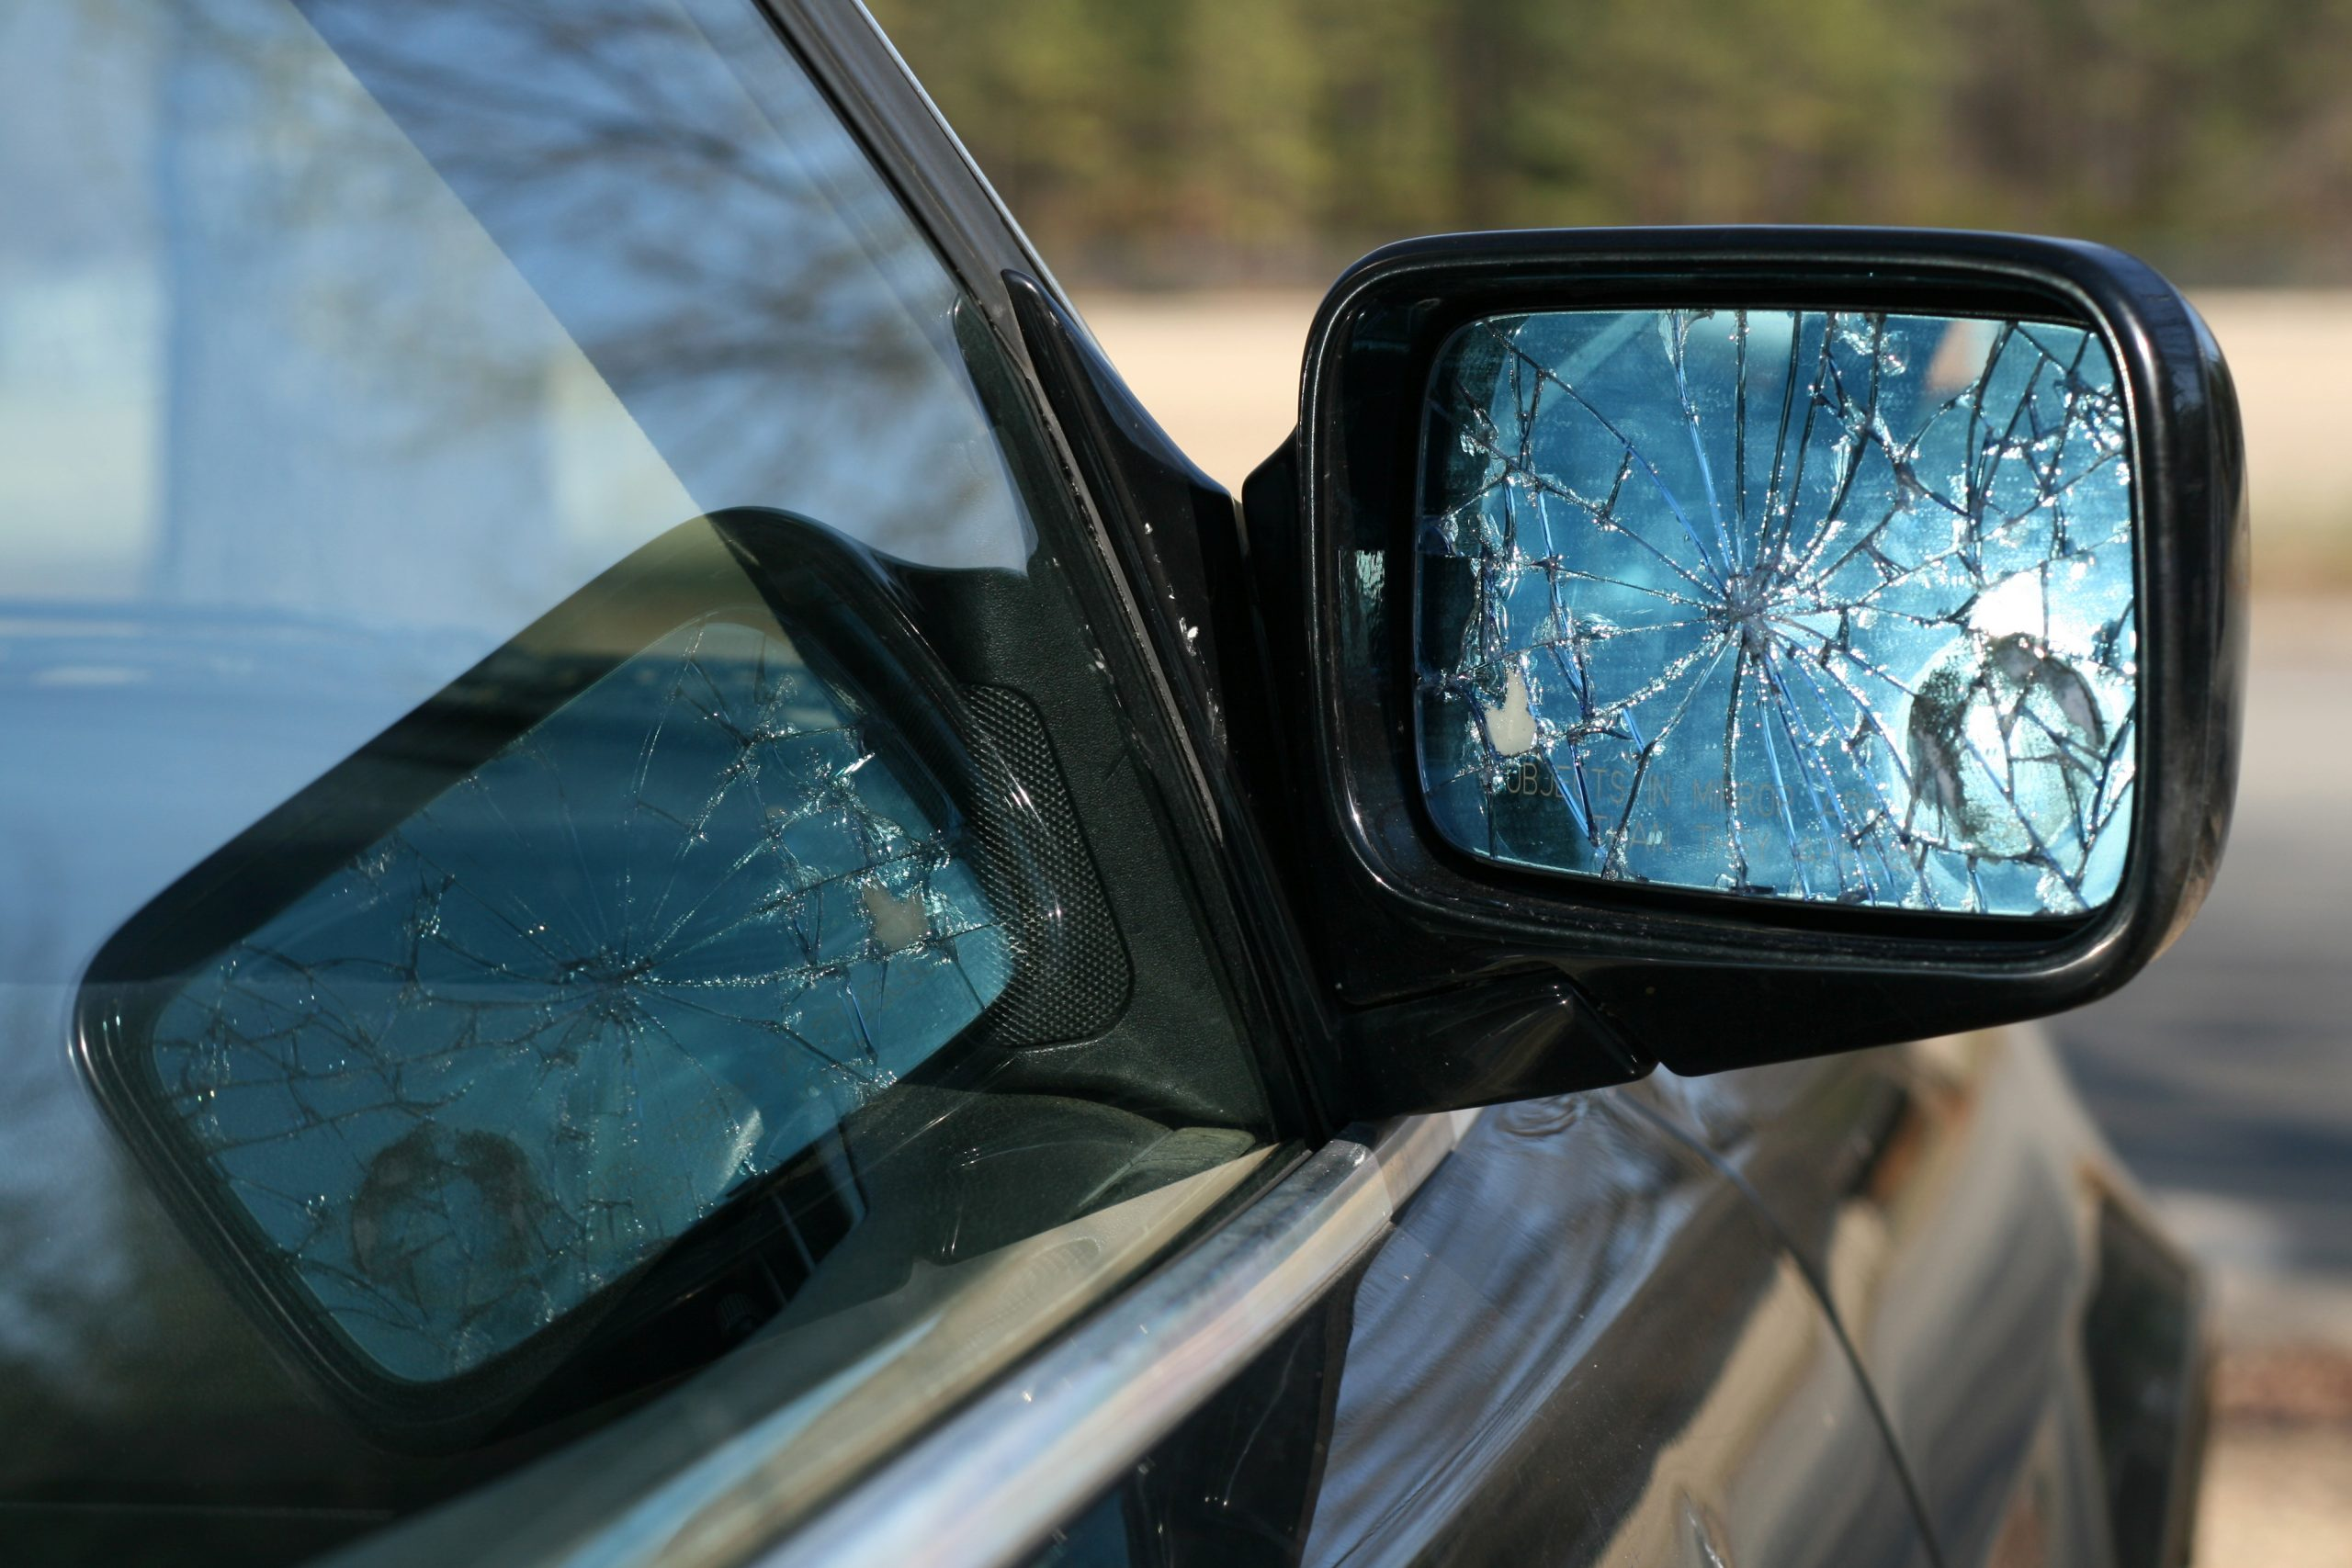 Shattered rear view mirror of car-rich list